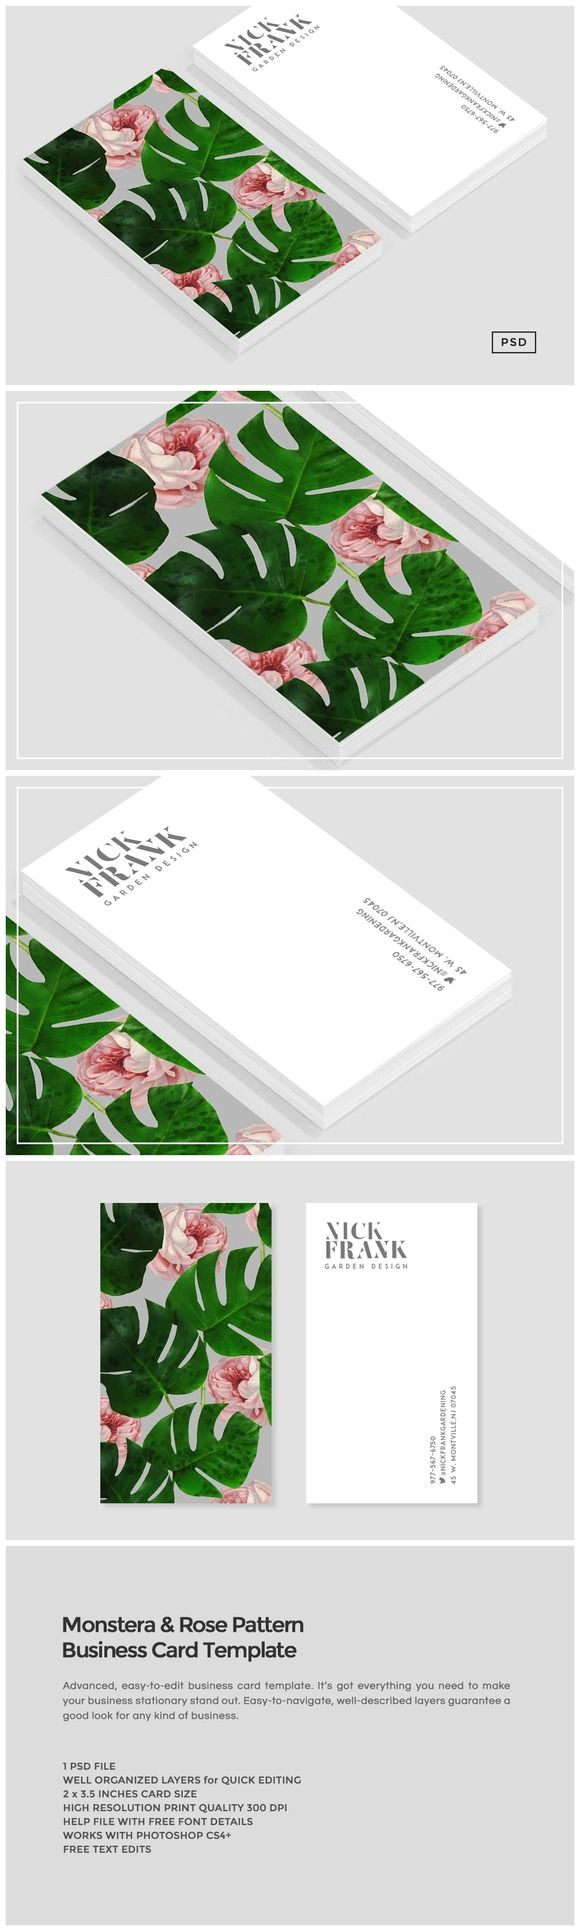 Monstera Rose Pattern Business Card by Design Co. on @creativemarket